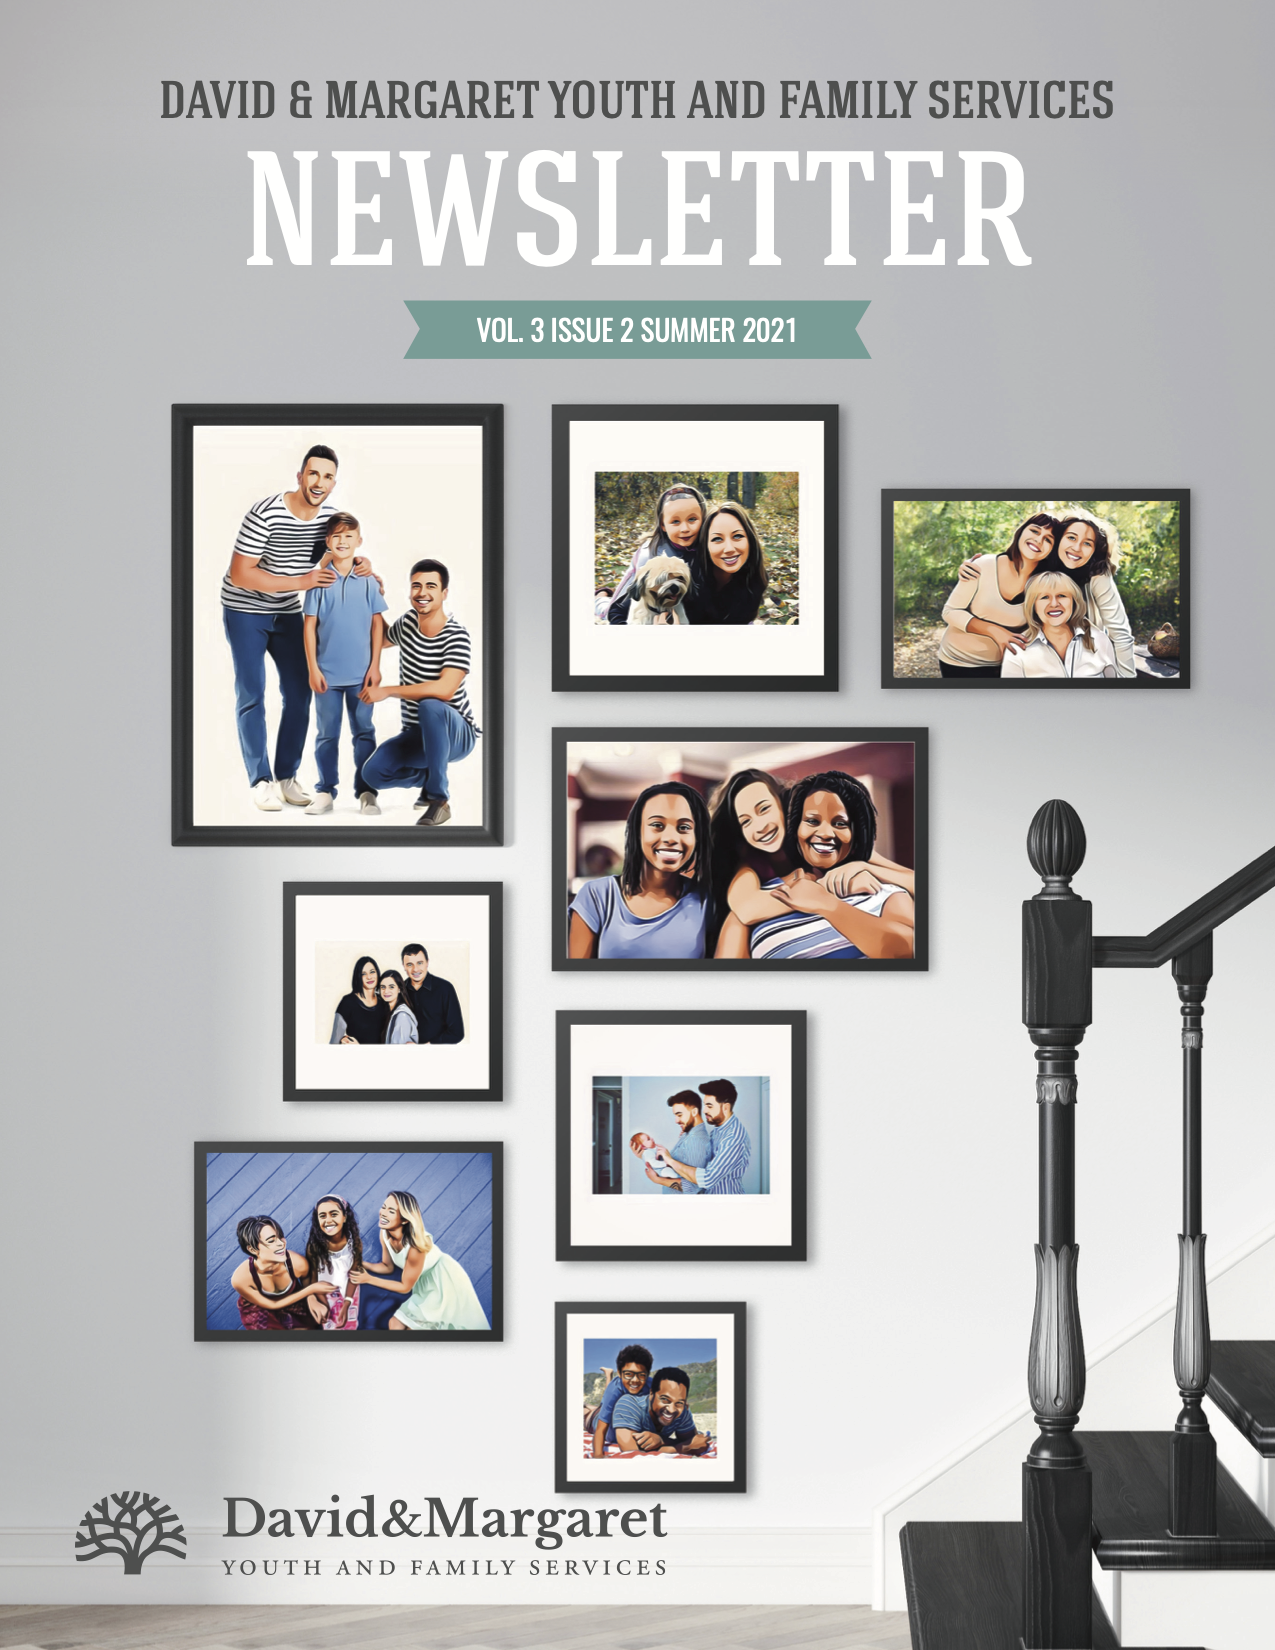 David & Margaret Quarterly Newsletter Vol. 3 Issue 2; Foster Care and Adoption Agency